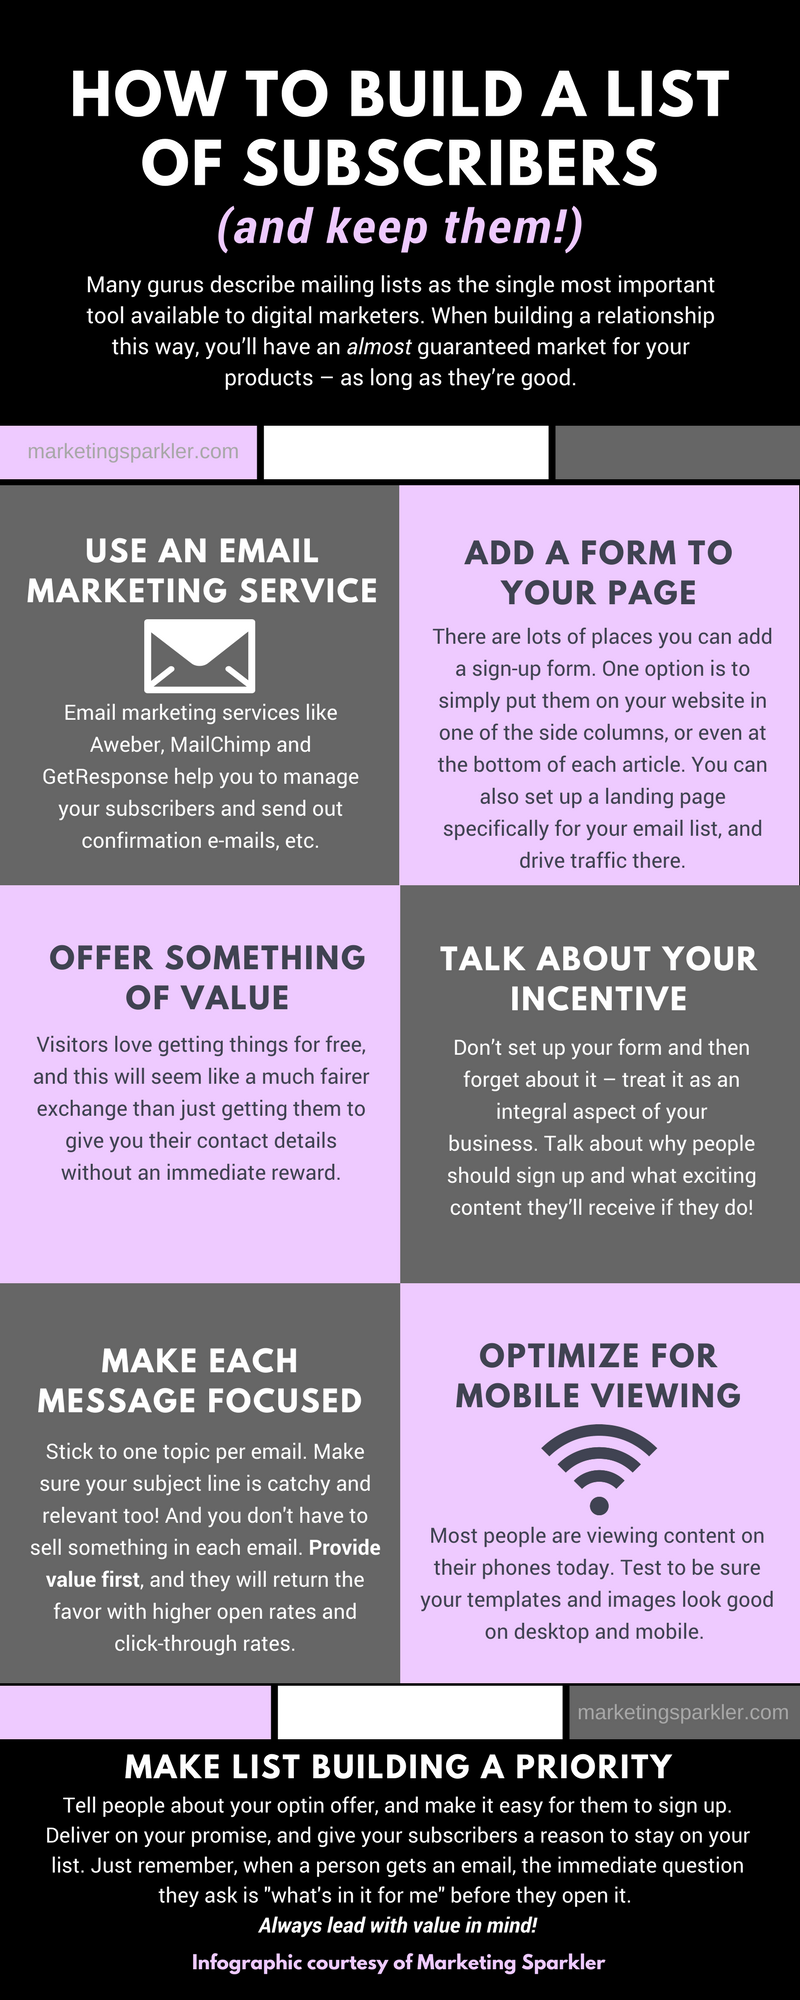 How to build an email list of subscribers infographic by Marketing Sparkler